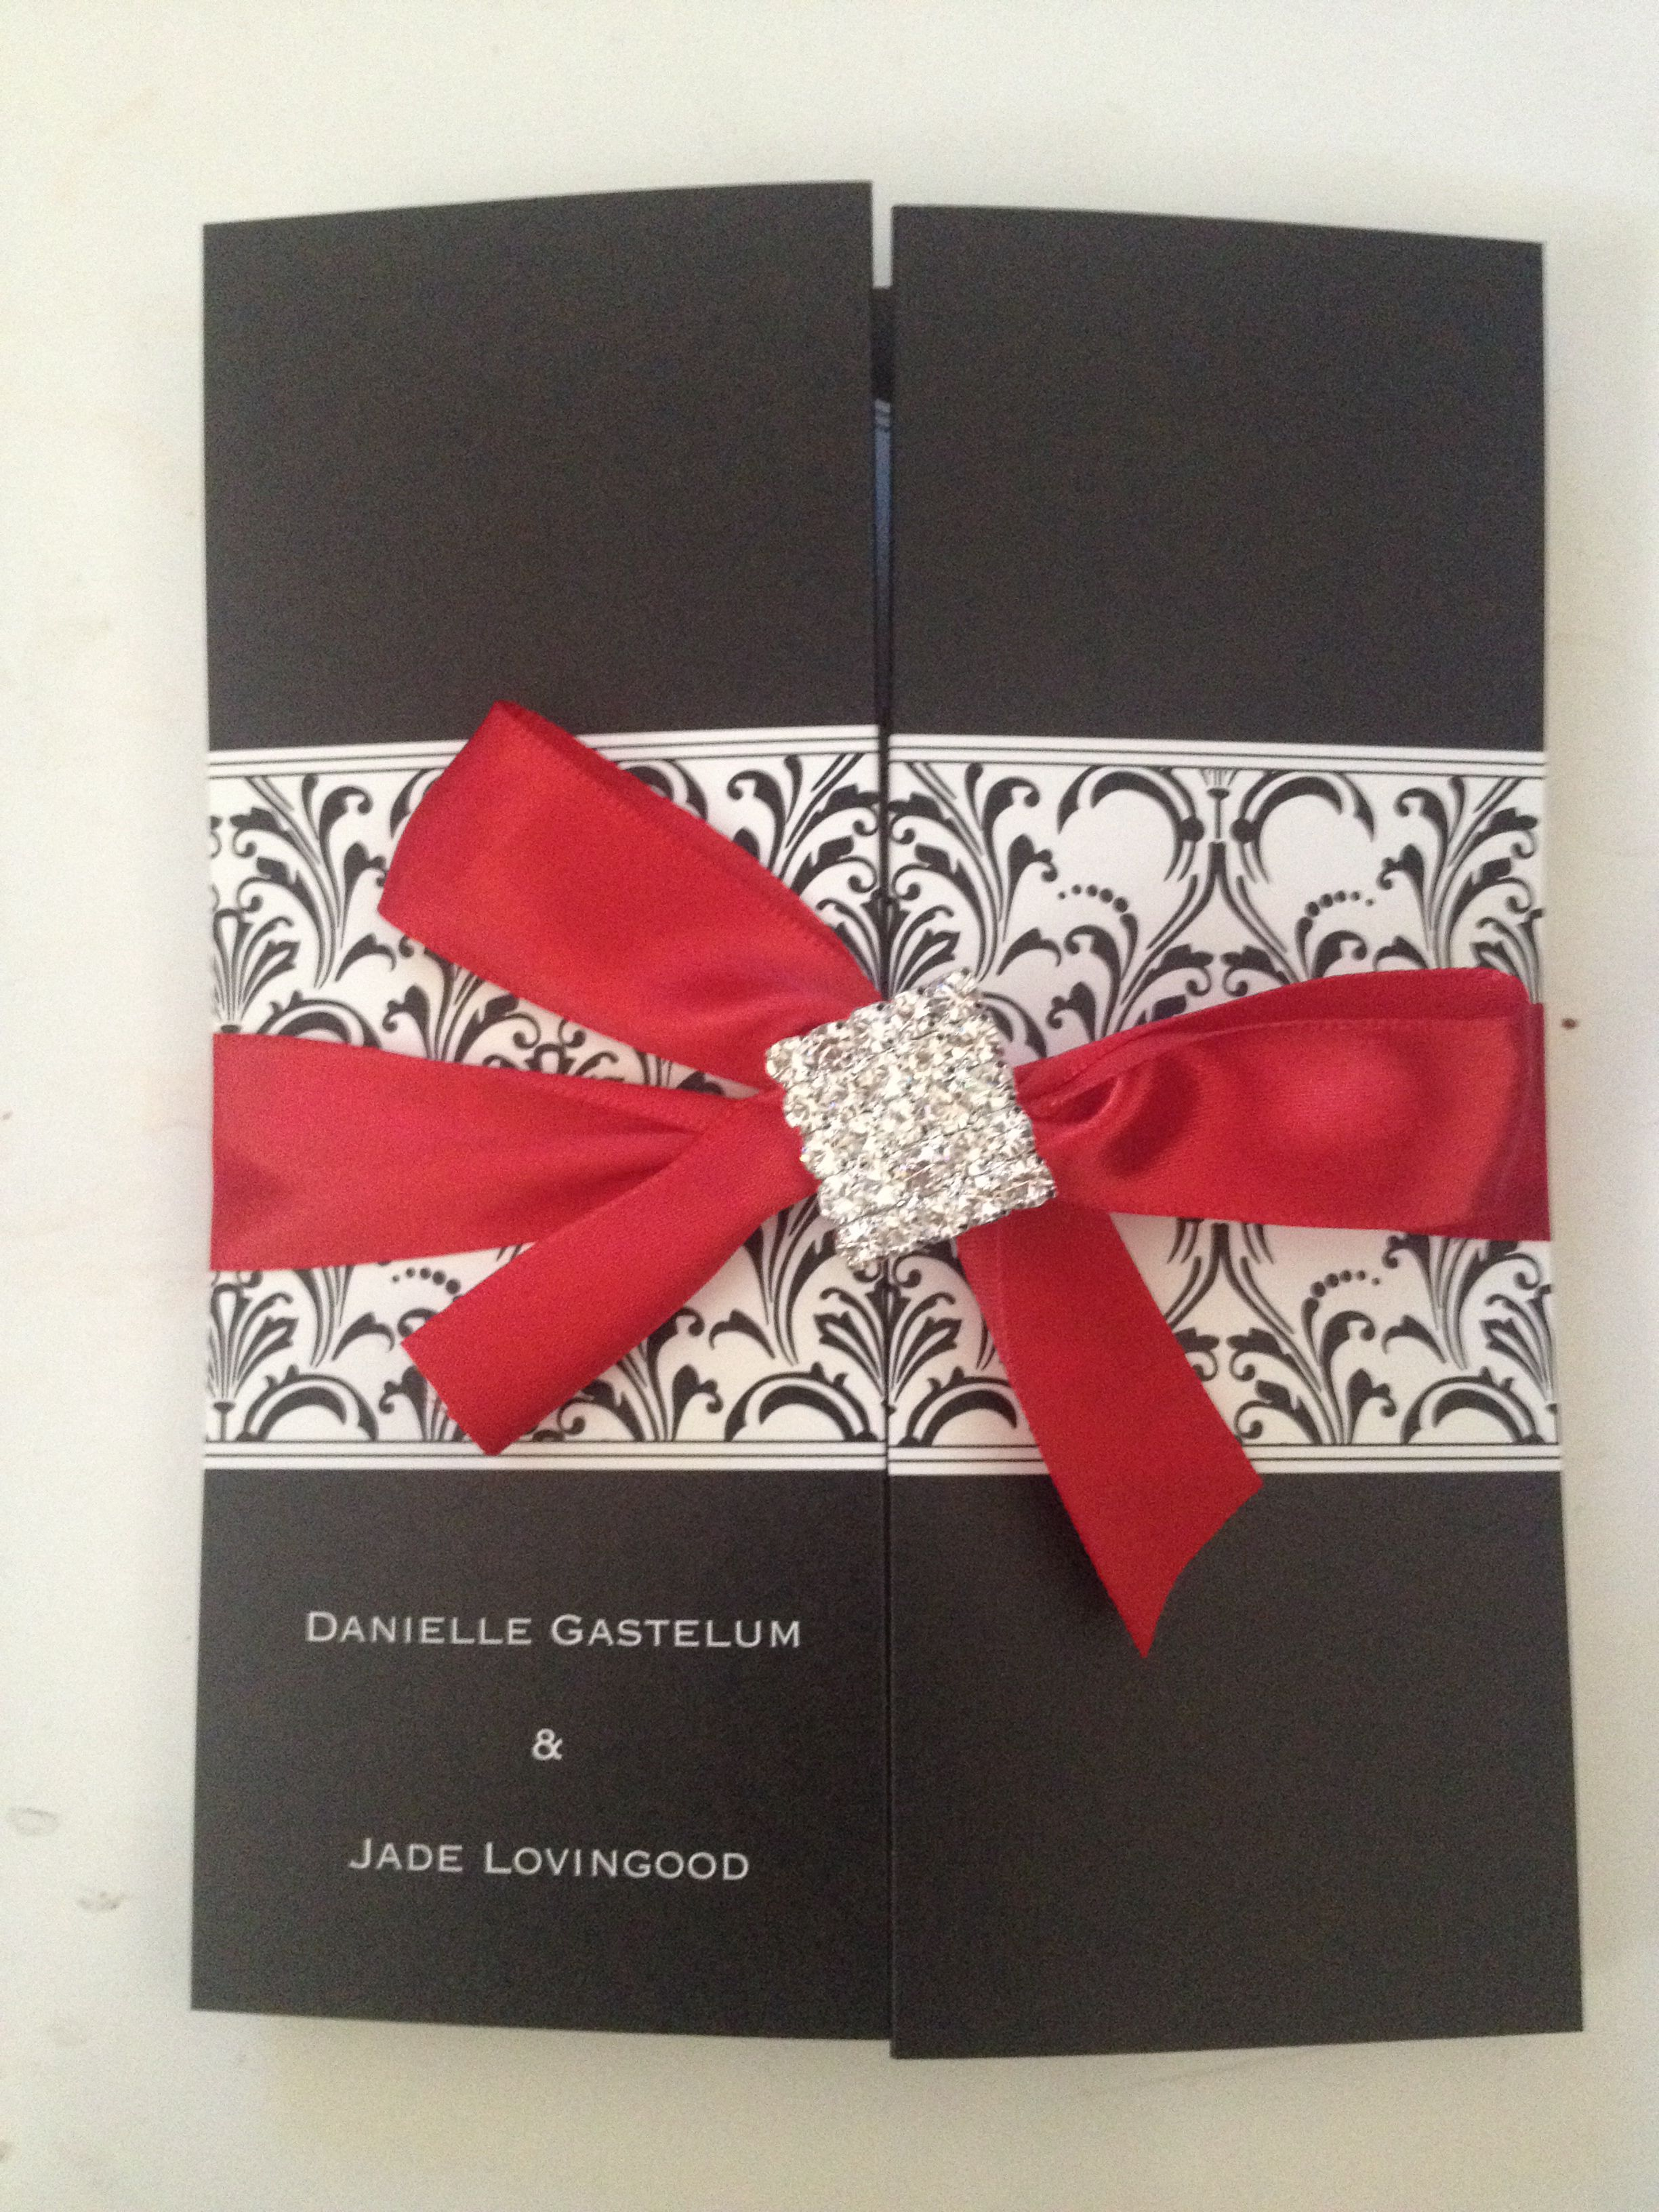 Used a David\'s Bridal invite - bought my own ribbon (they charge too ...